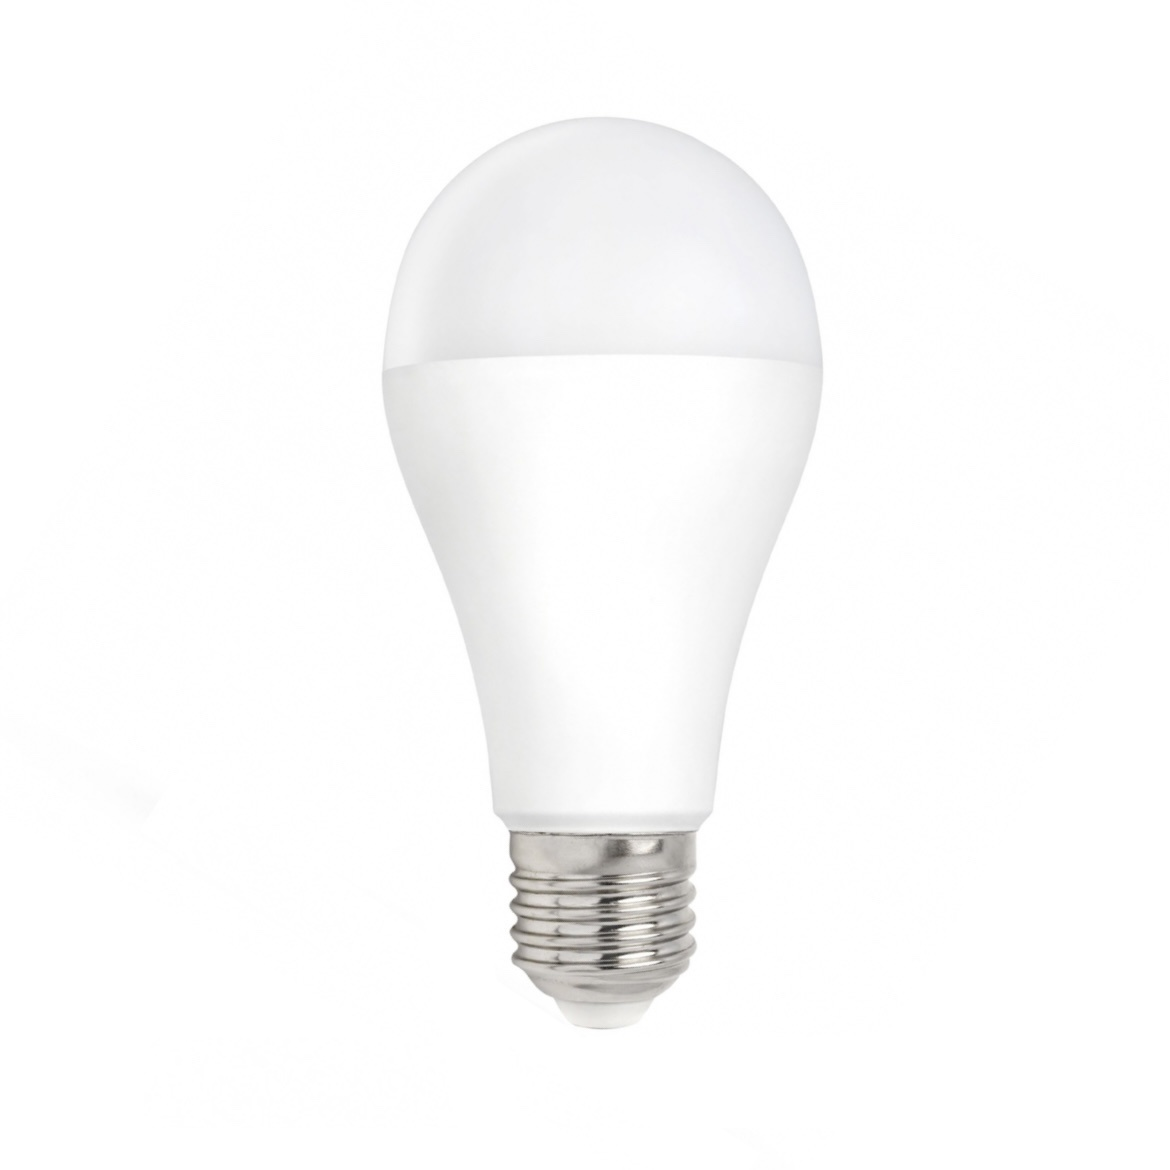 Led Lamp Dimbaar E27 Fitting 12w Vervangt 100w Warm Wit Licht Ledlichtdiscounter Nl